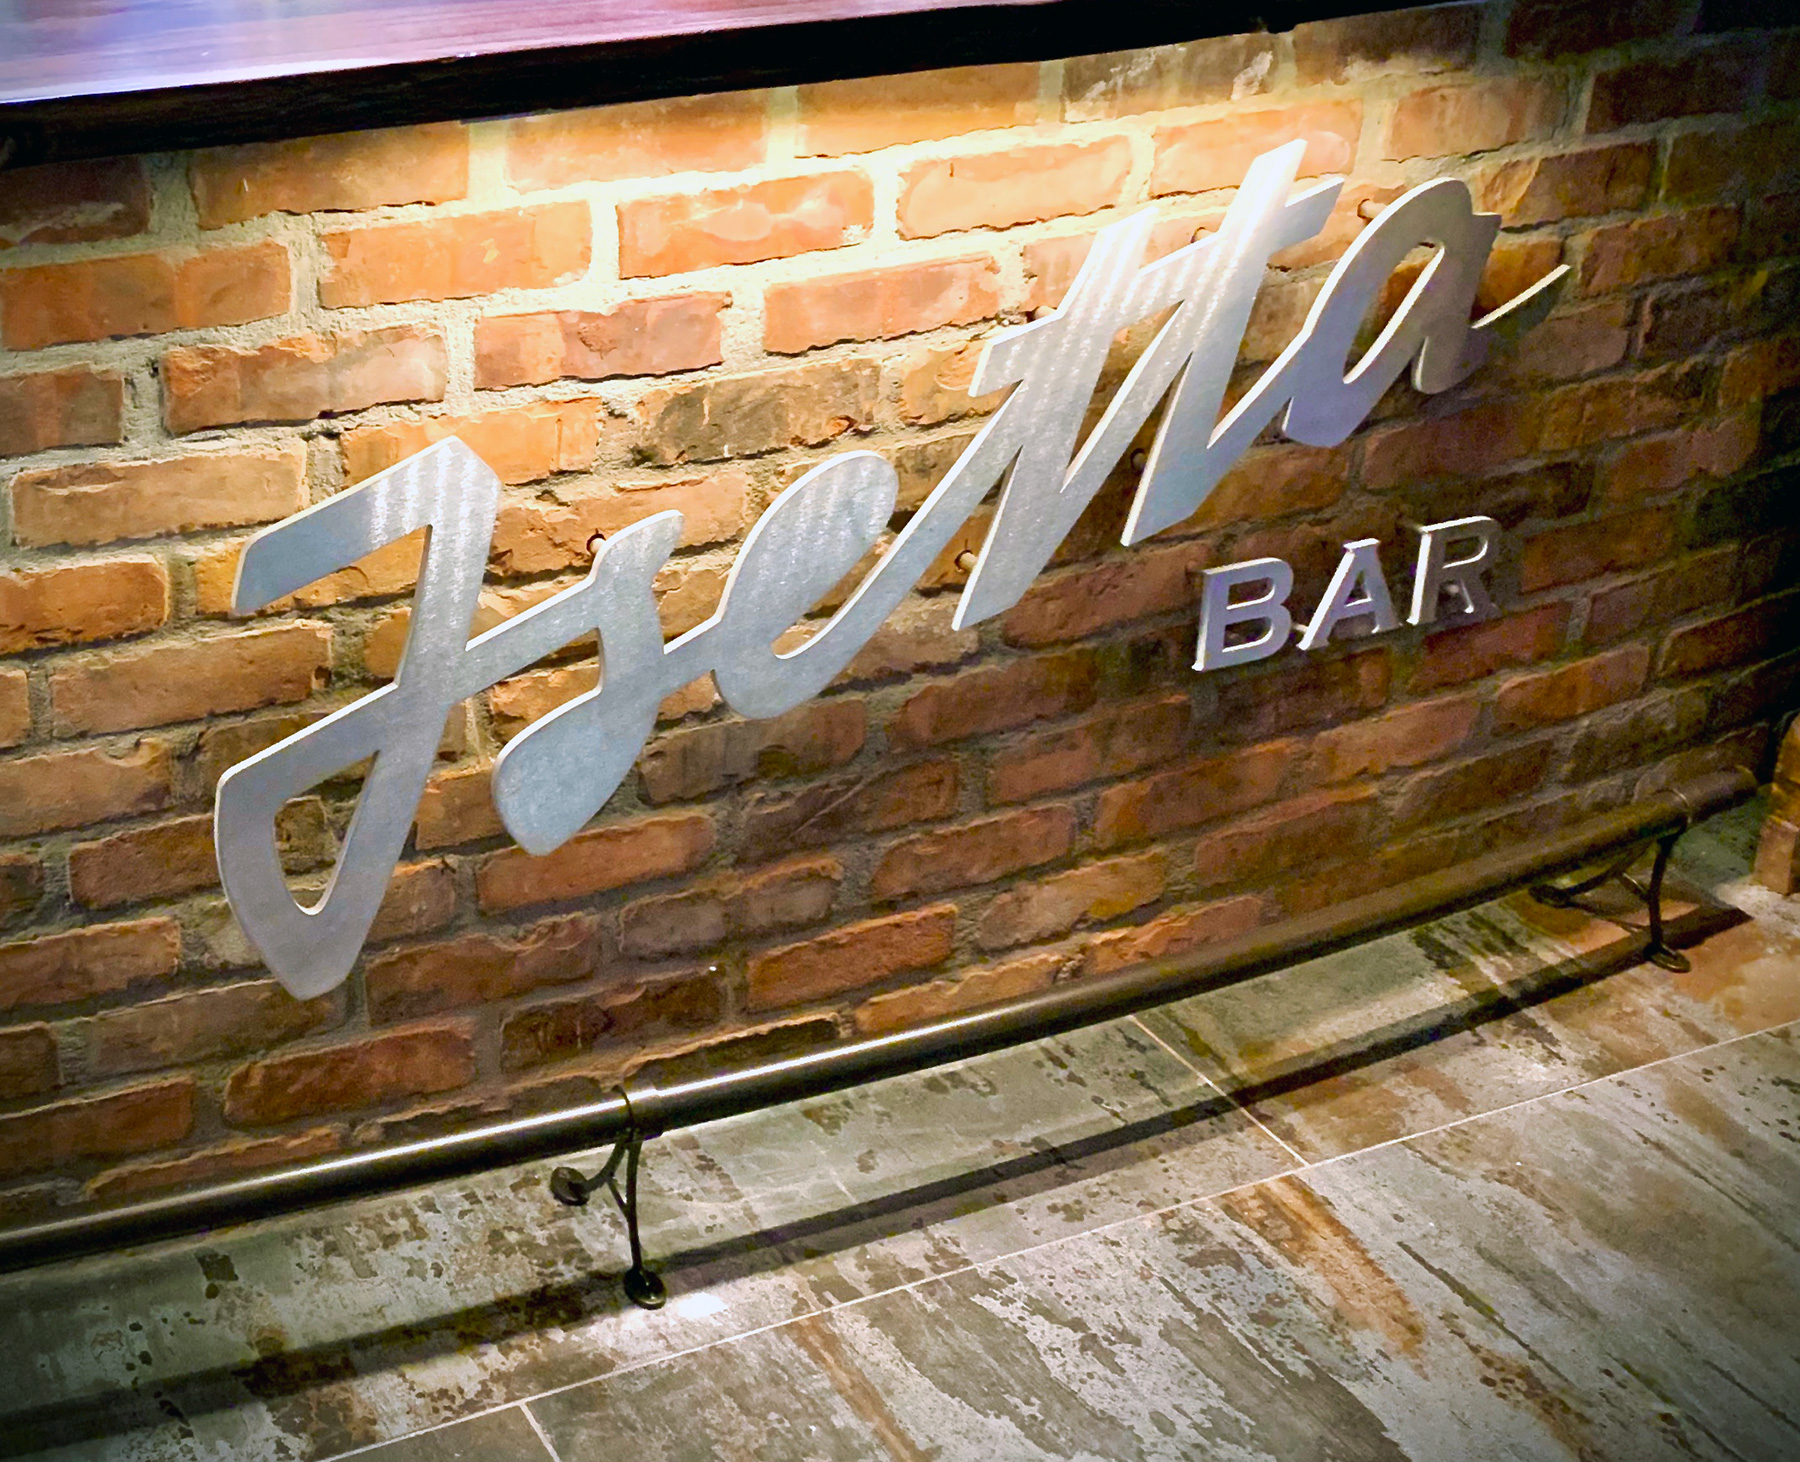 Oil Rubbed Bronze Foot Rail | Isetta Bar - Huntington, NY